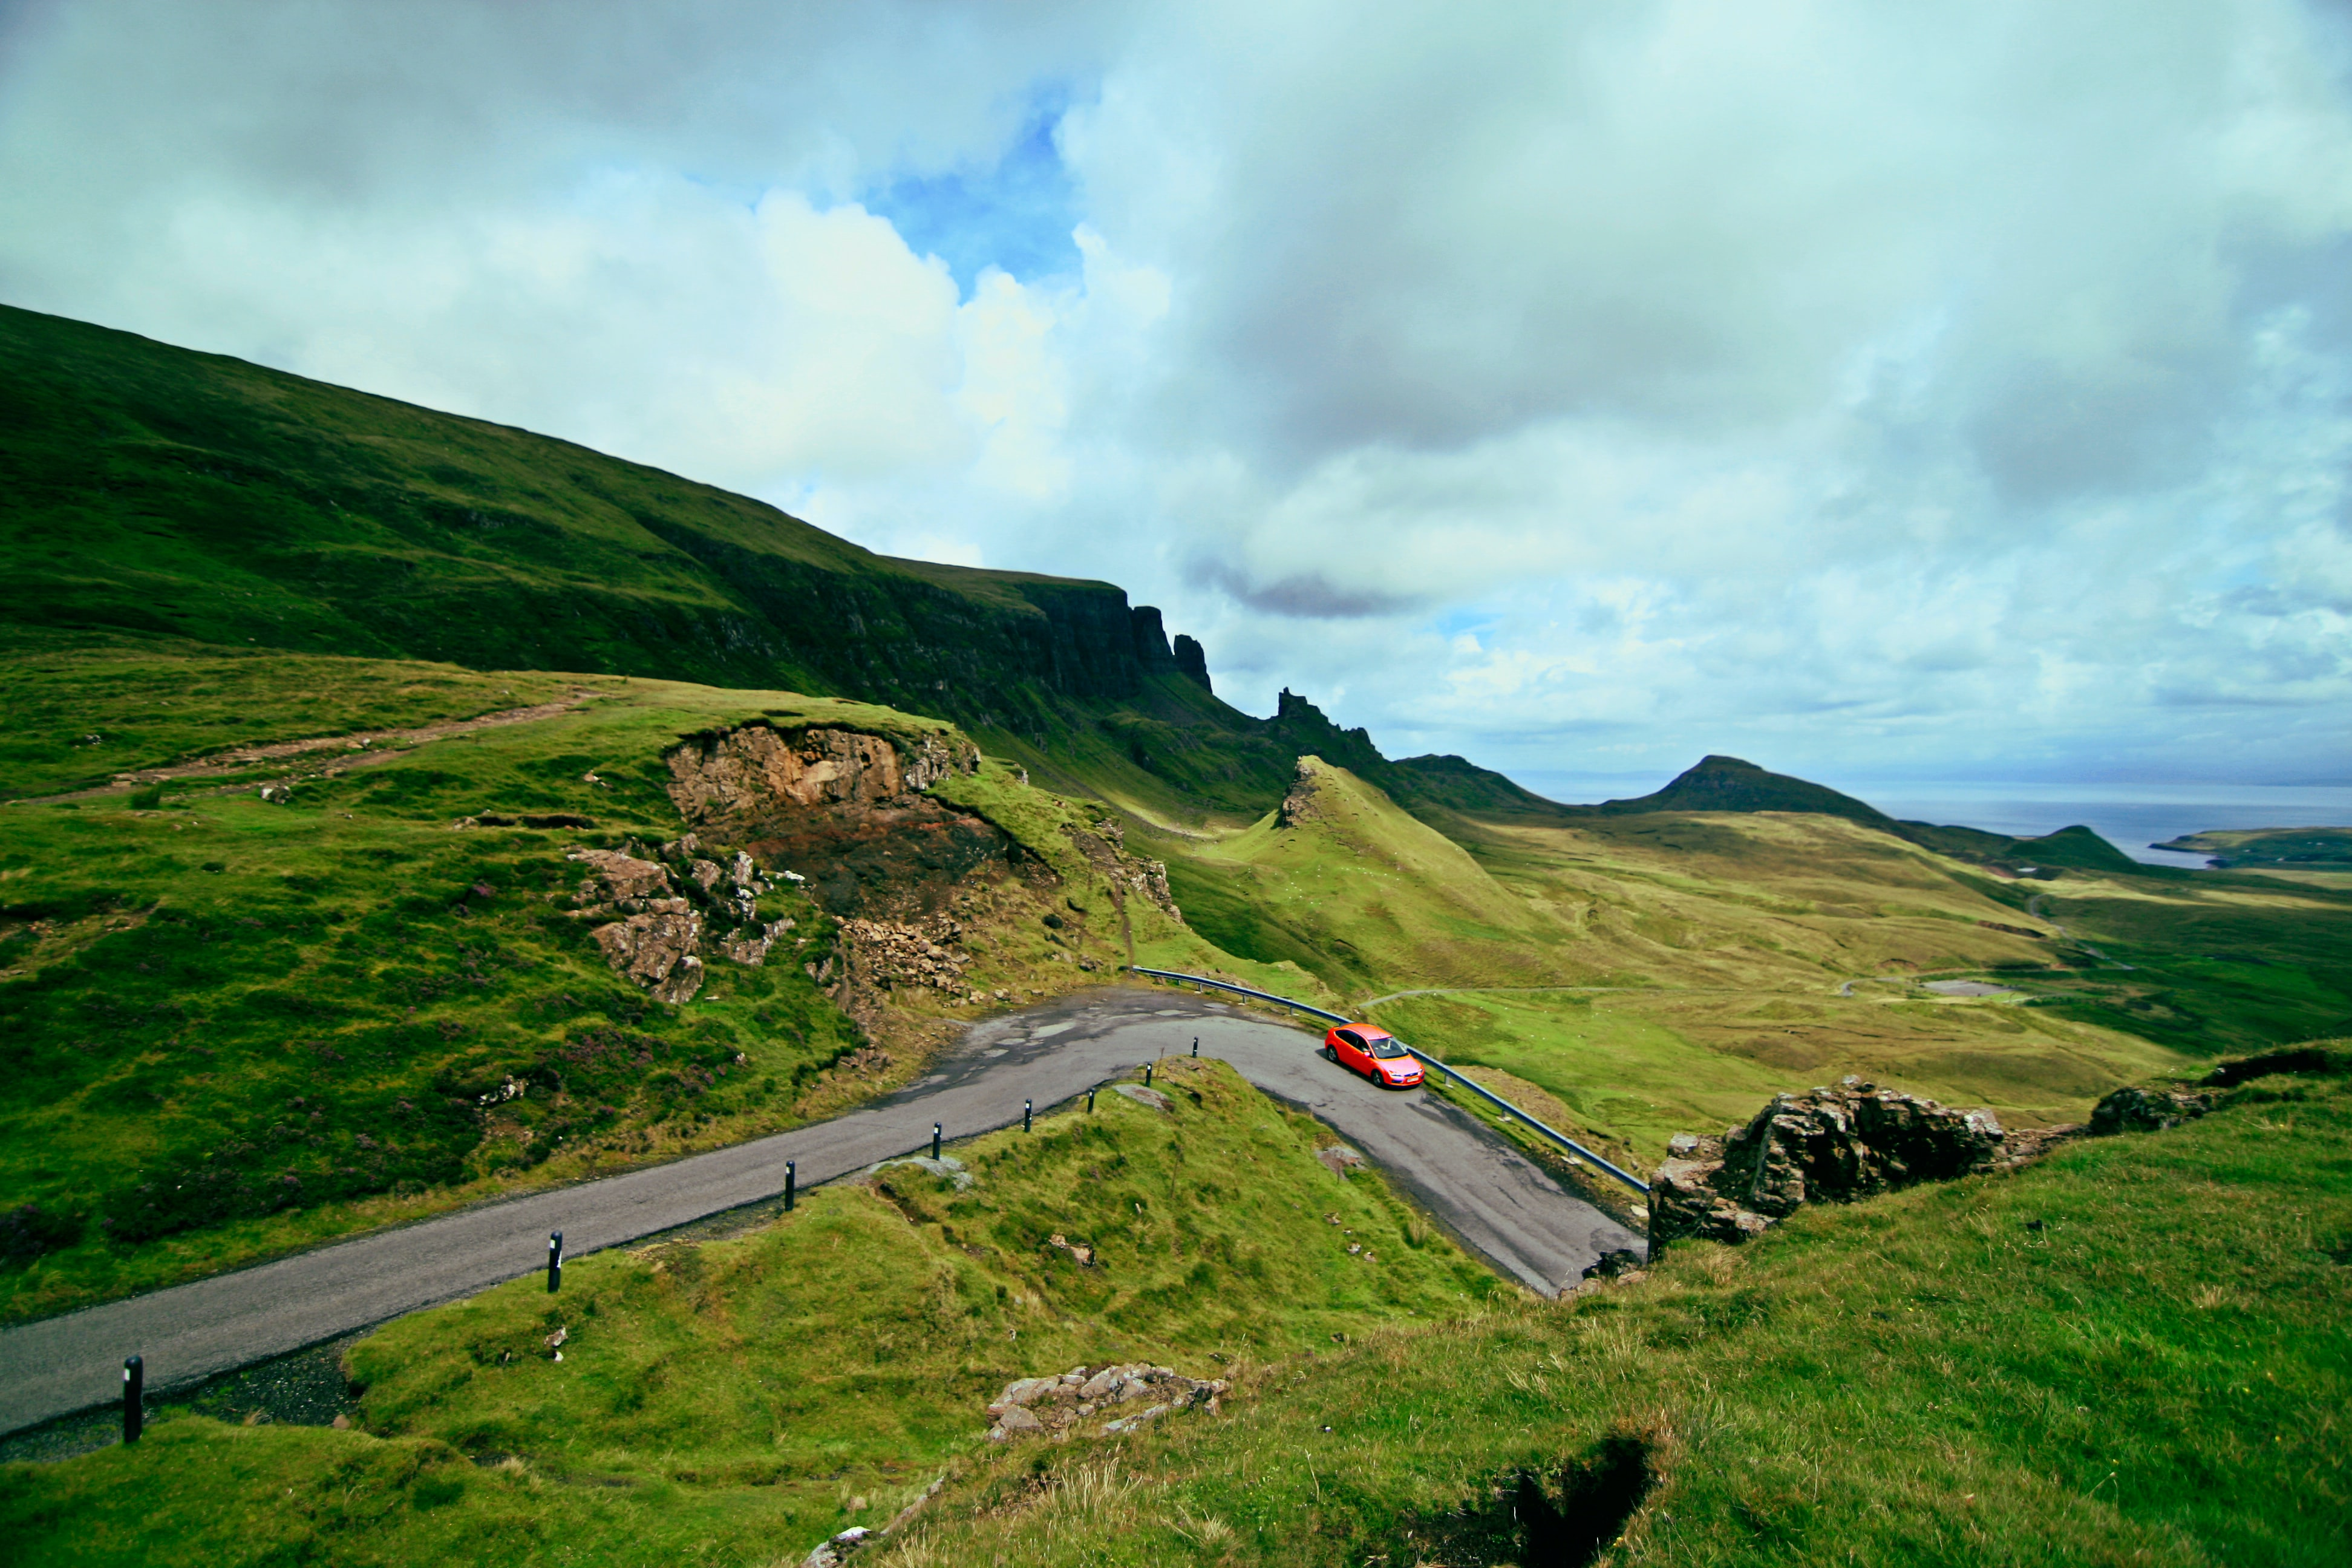 Red car driving on countryside road surrounded by green landscape and sloped cliffs